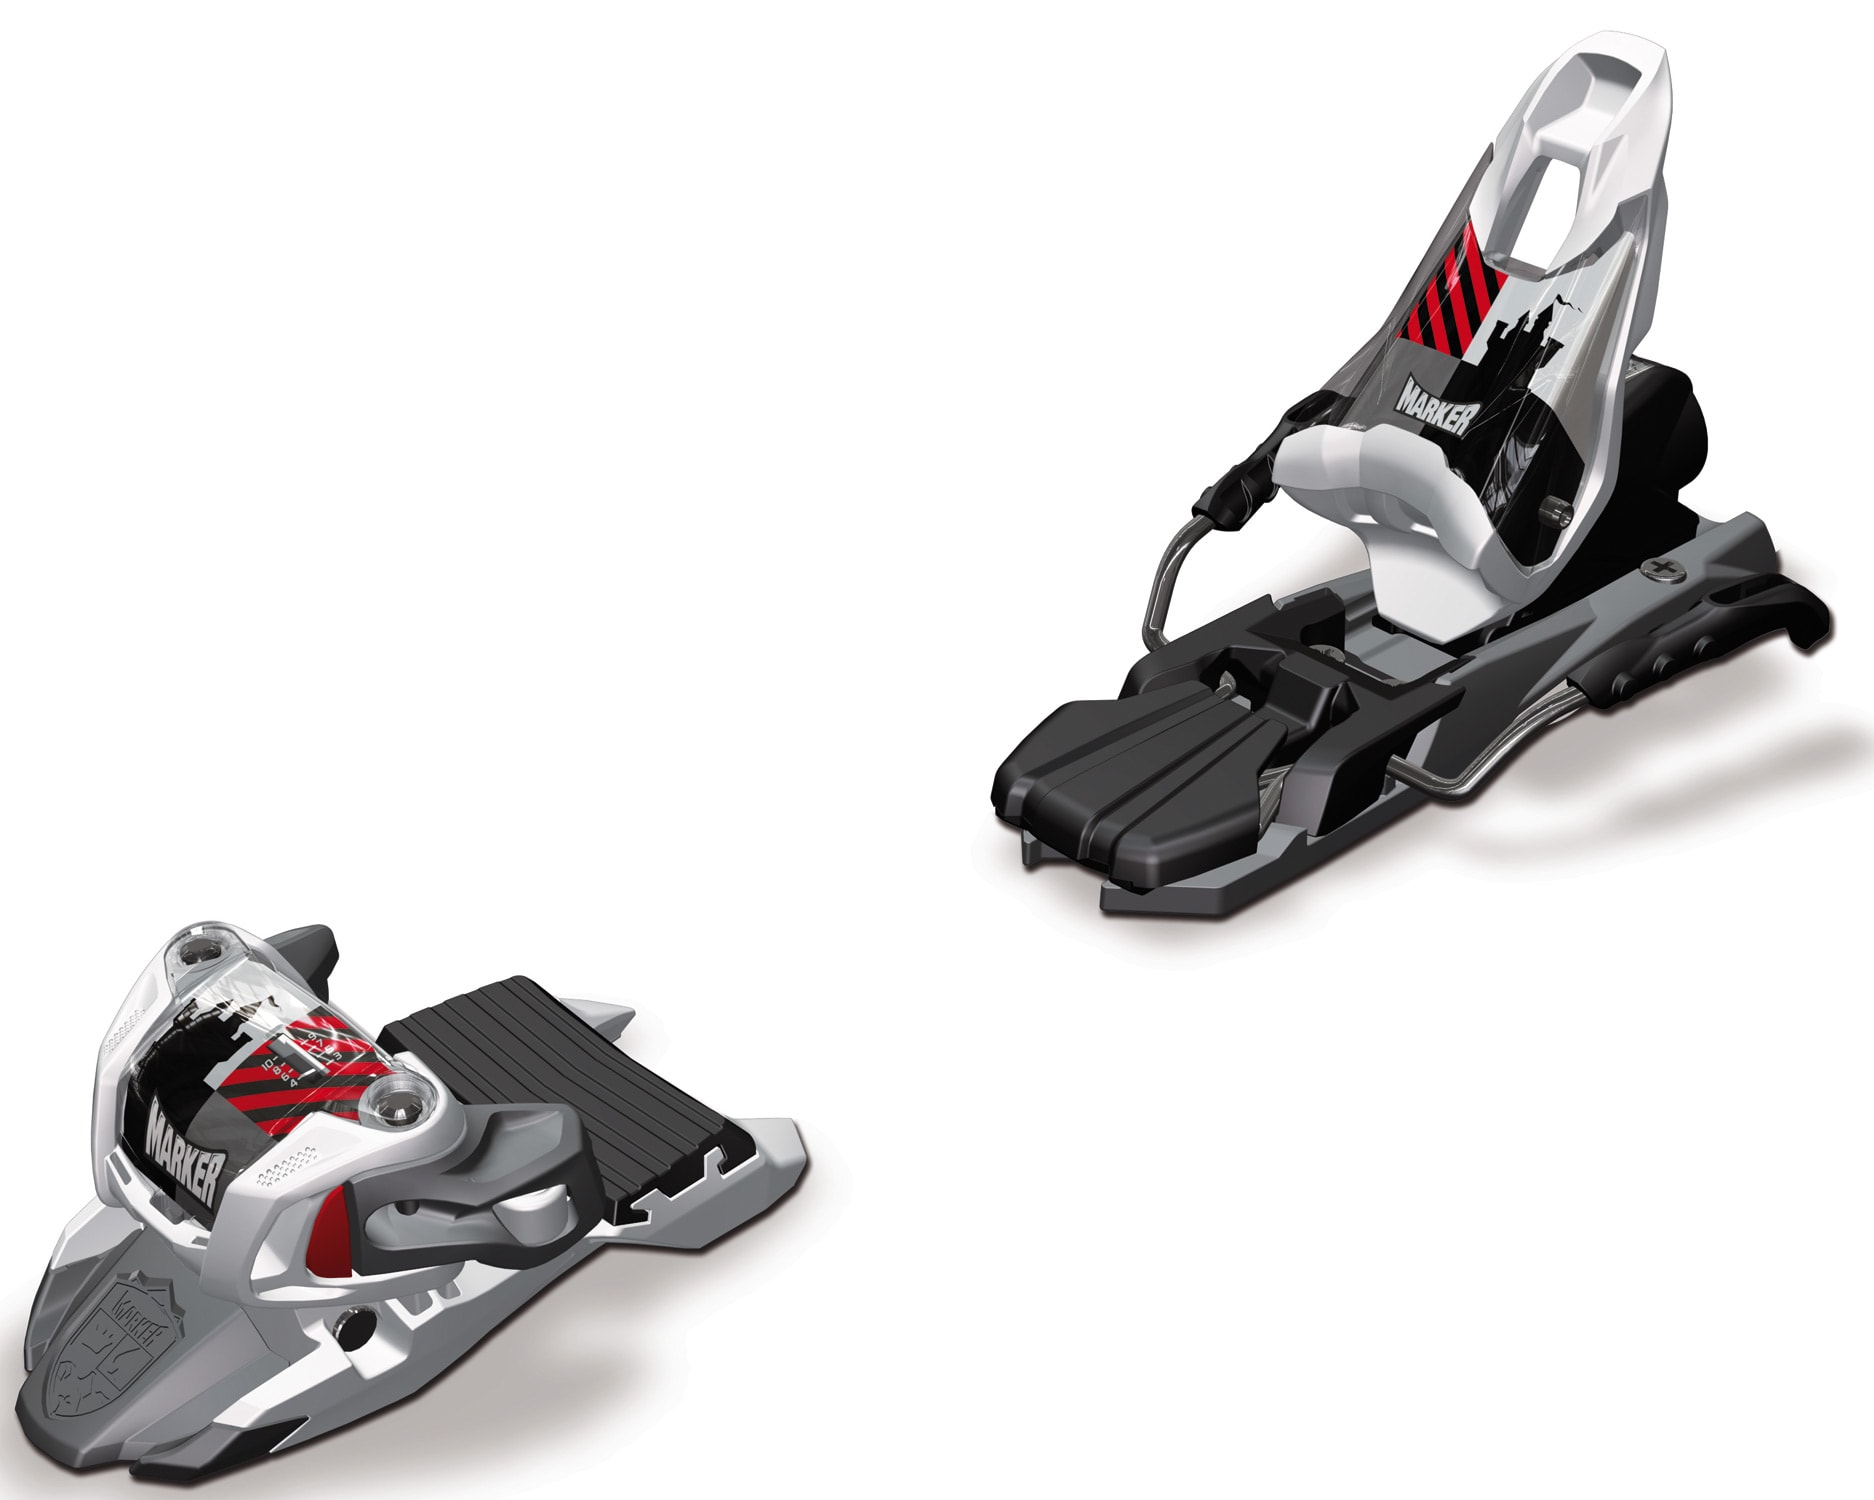 On Sale Marker Free Ten Ski Bindings Up To 45% Off